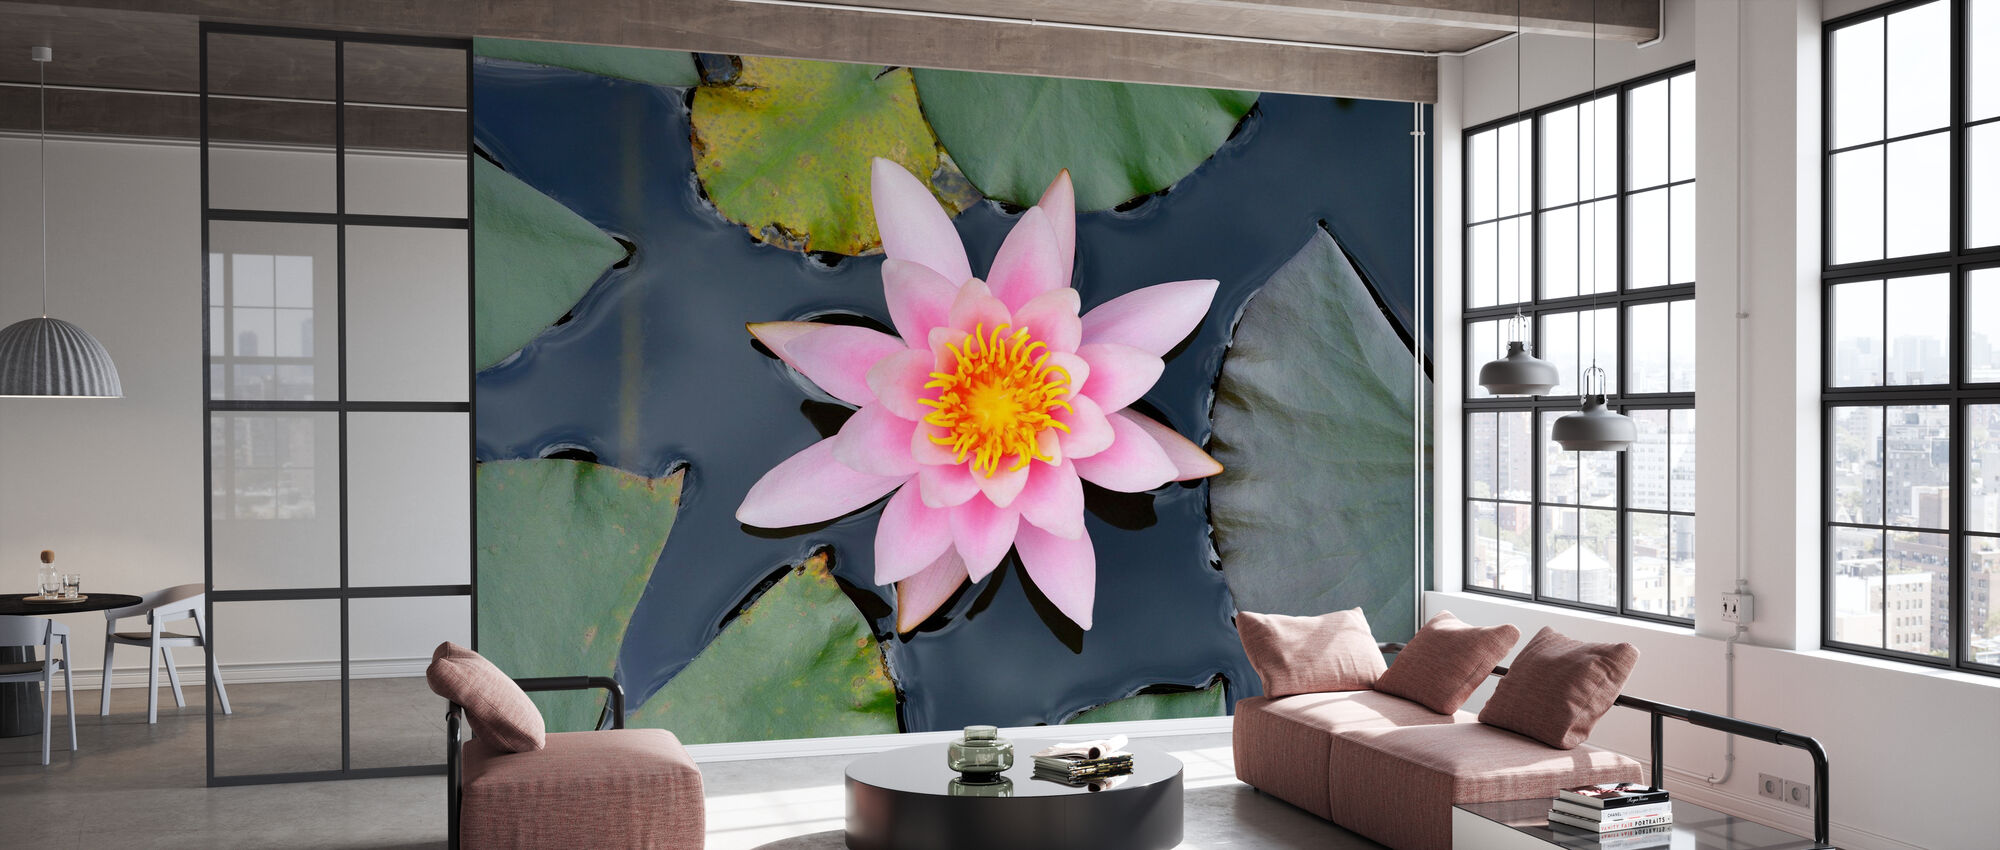 Pink Water Lily from Above - Wallpaper - Office